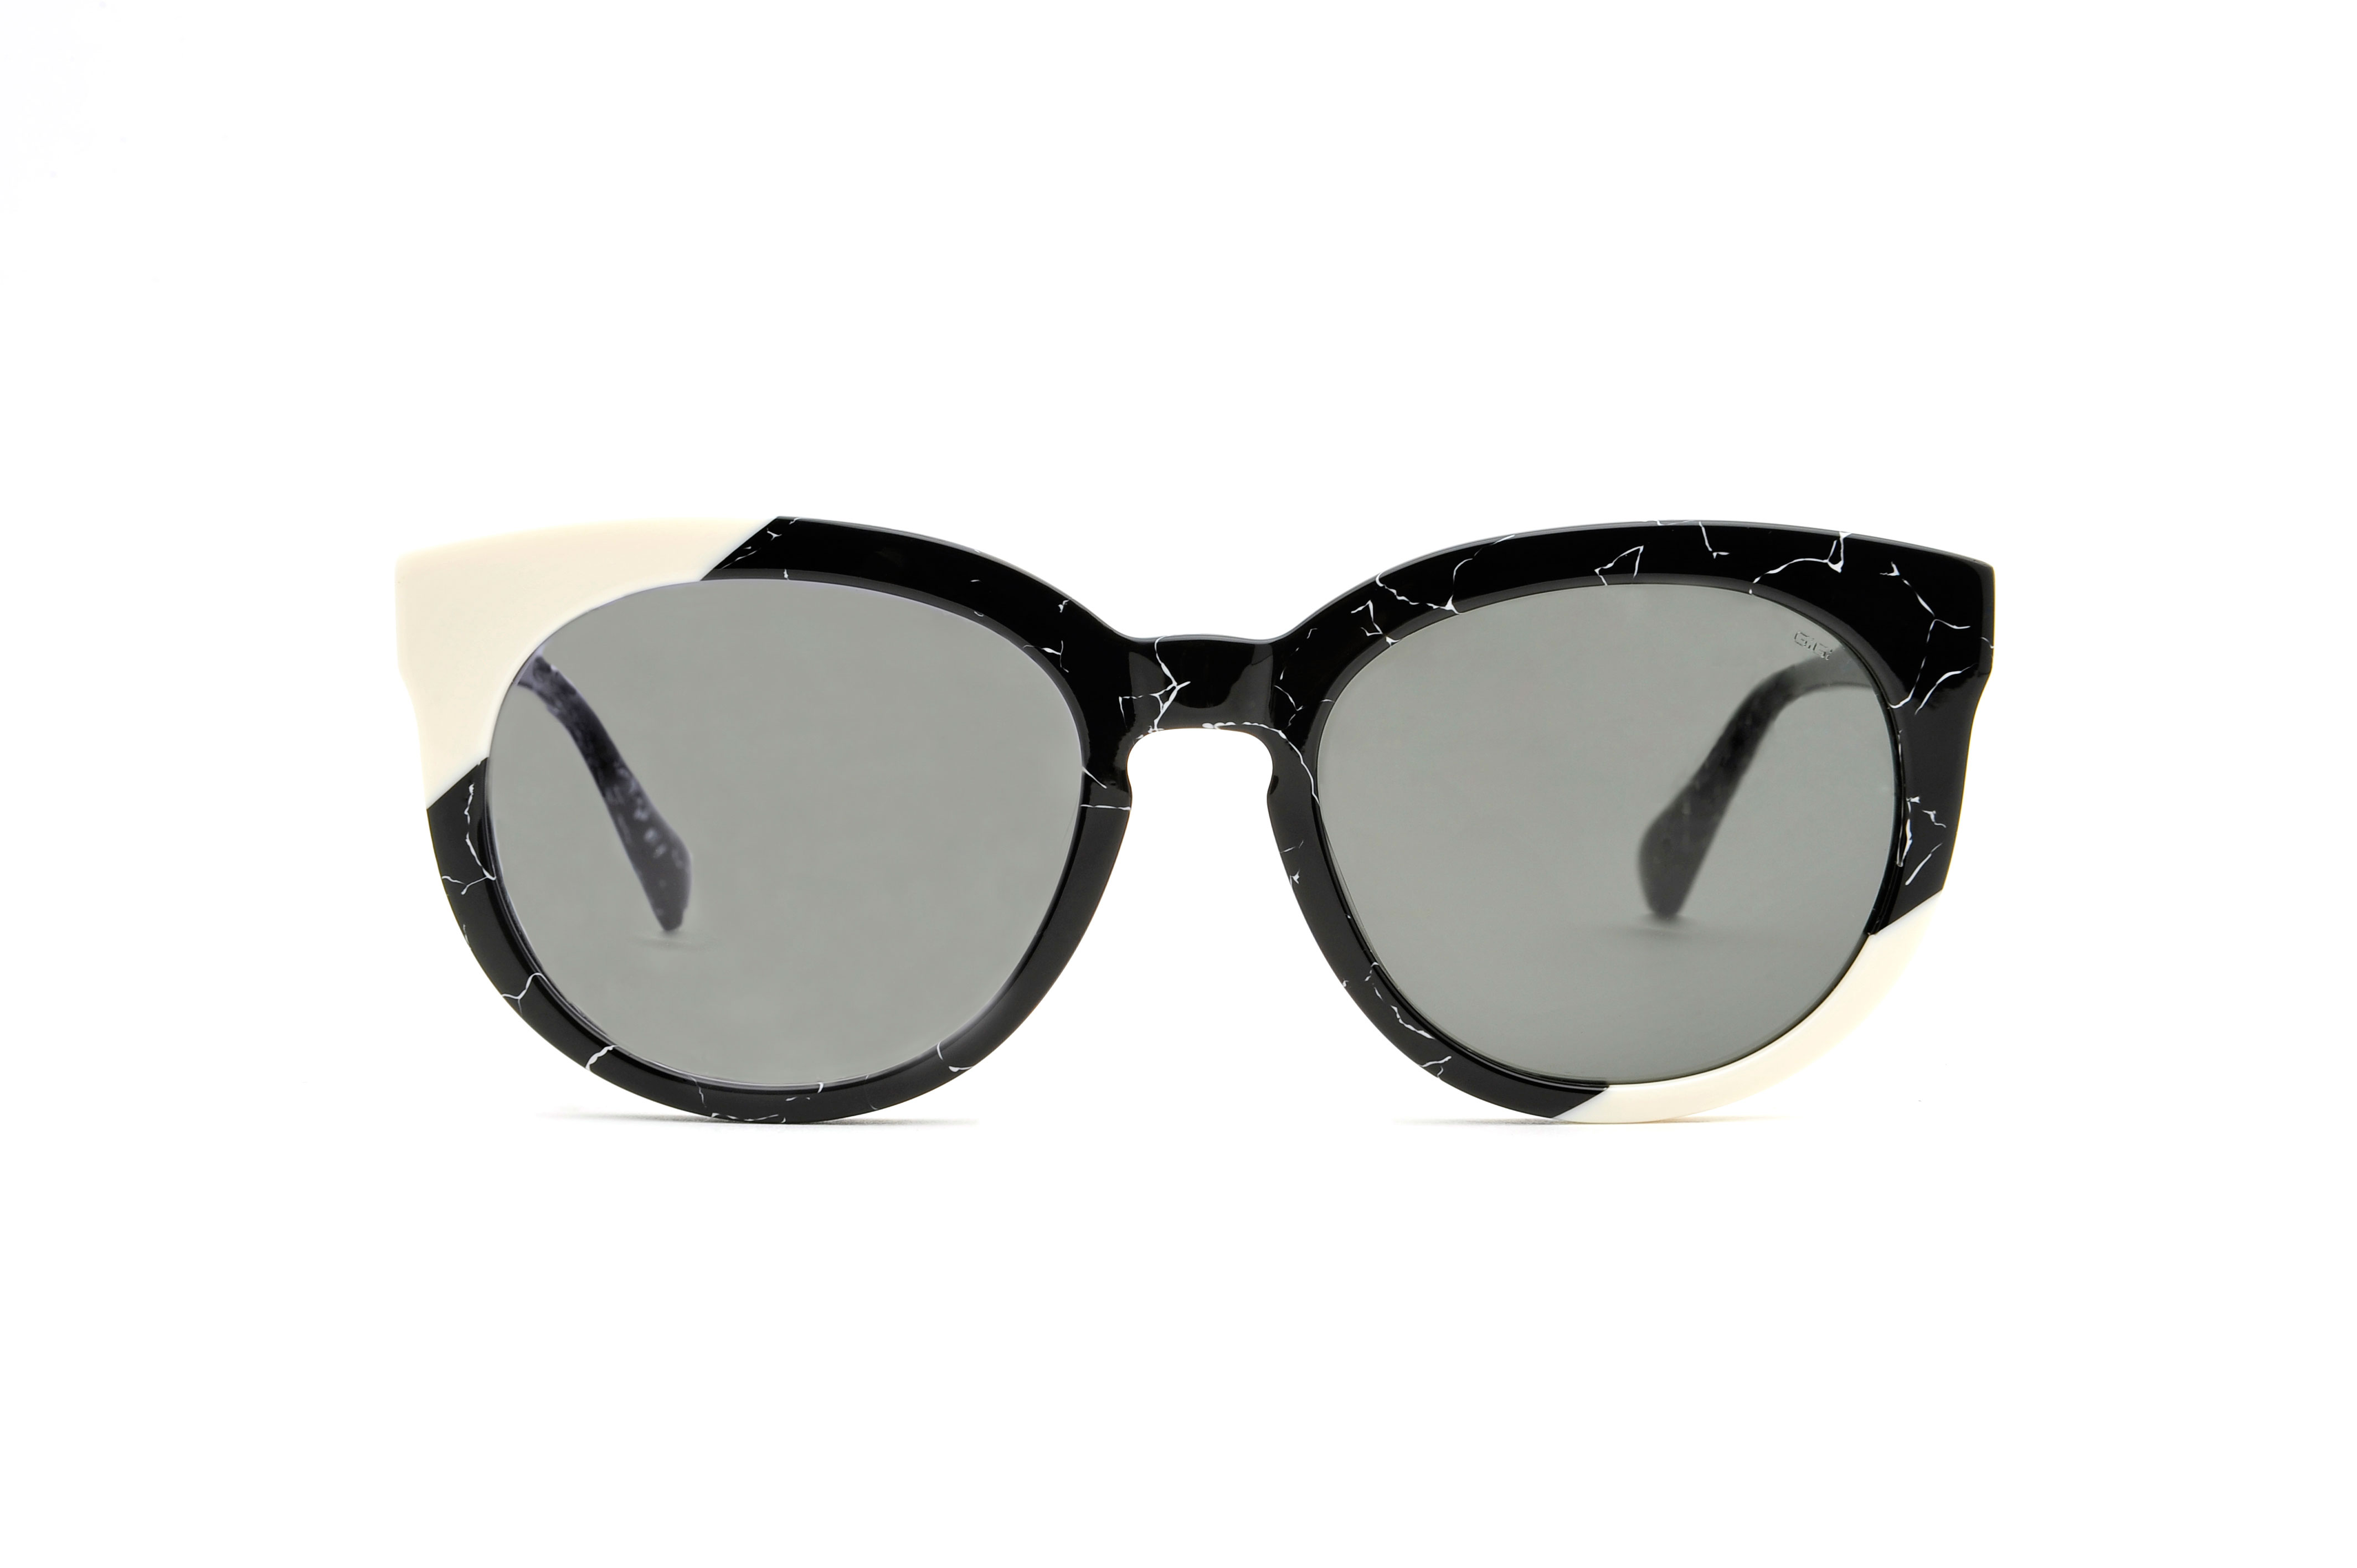 Marian acetate cat eye black sunglasses by GIGI Studios